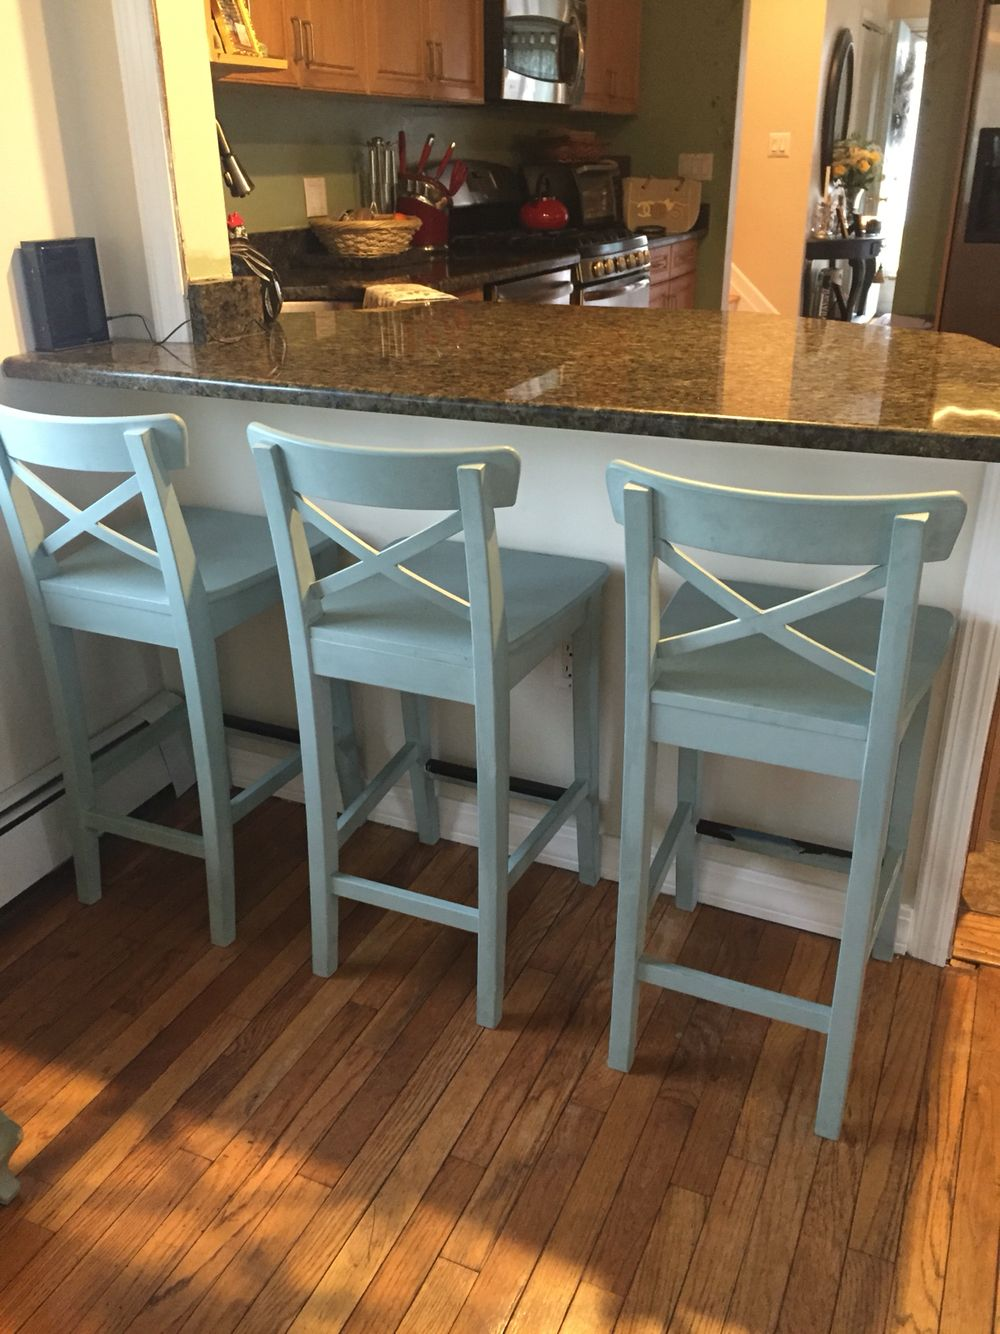 Ikea Counter Stools Painted With Annie Sloan Chalk Paint In Duck